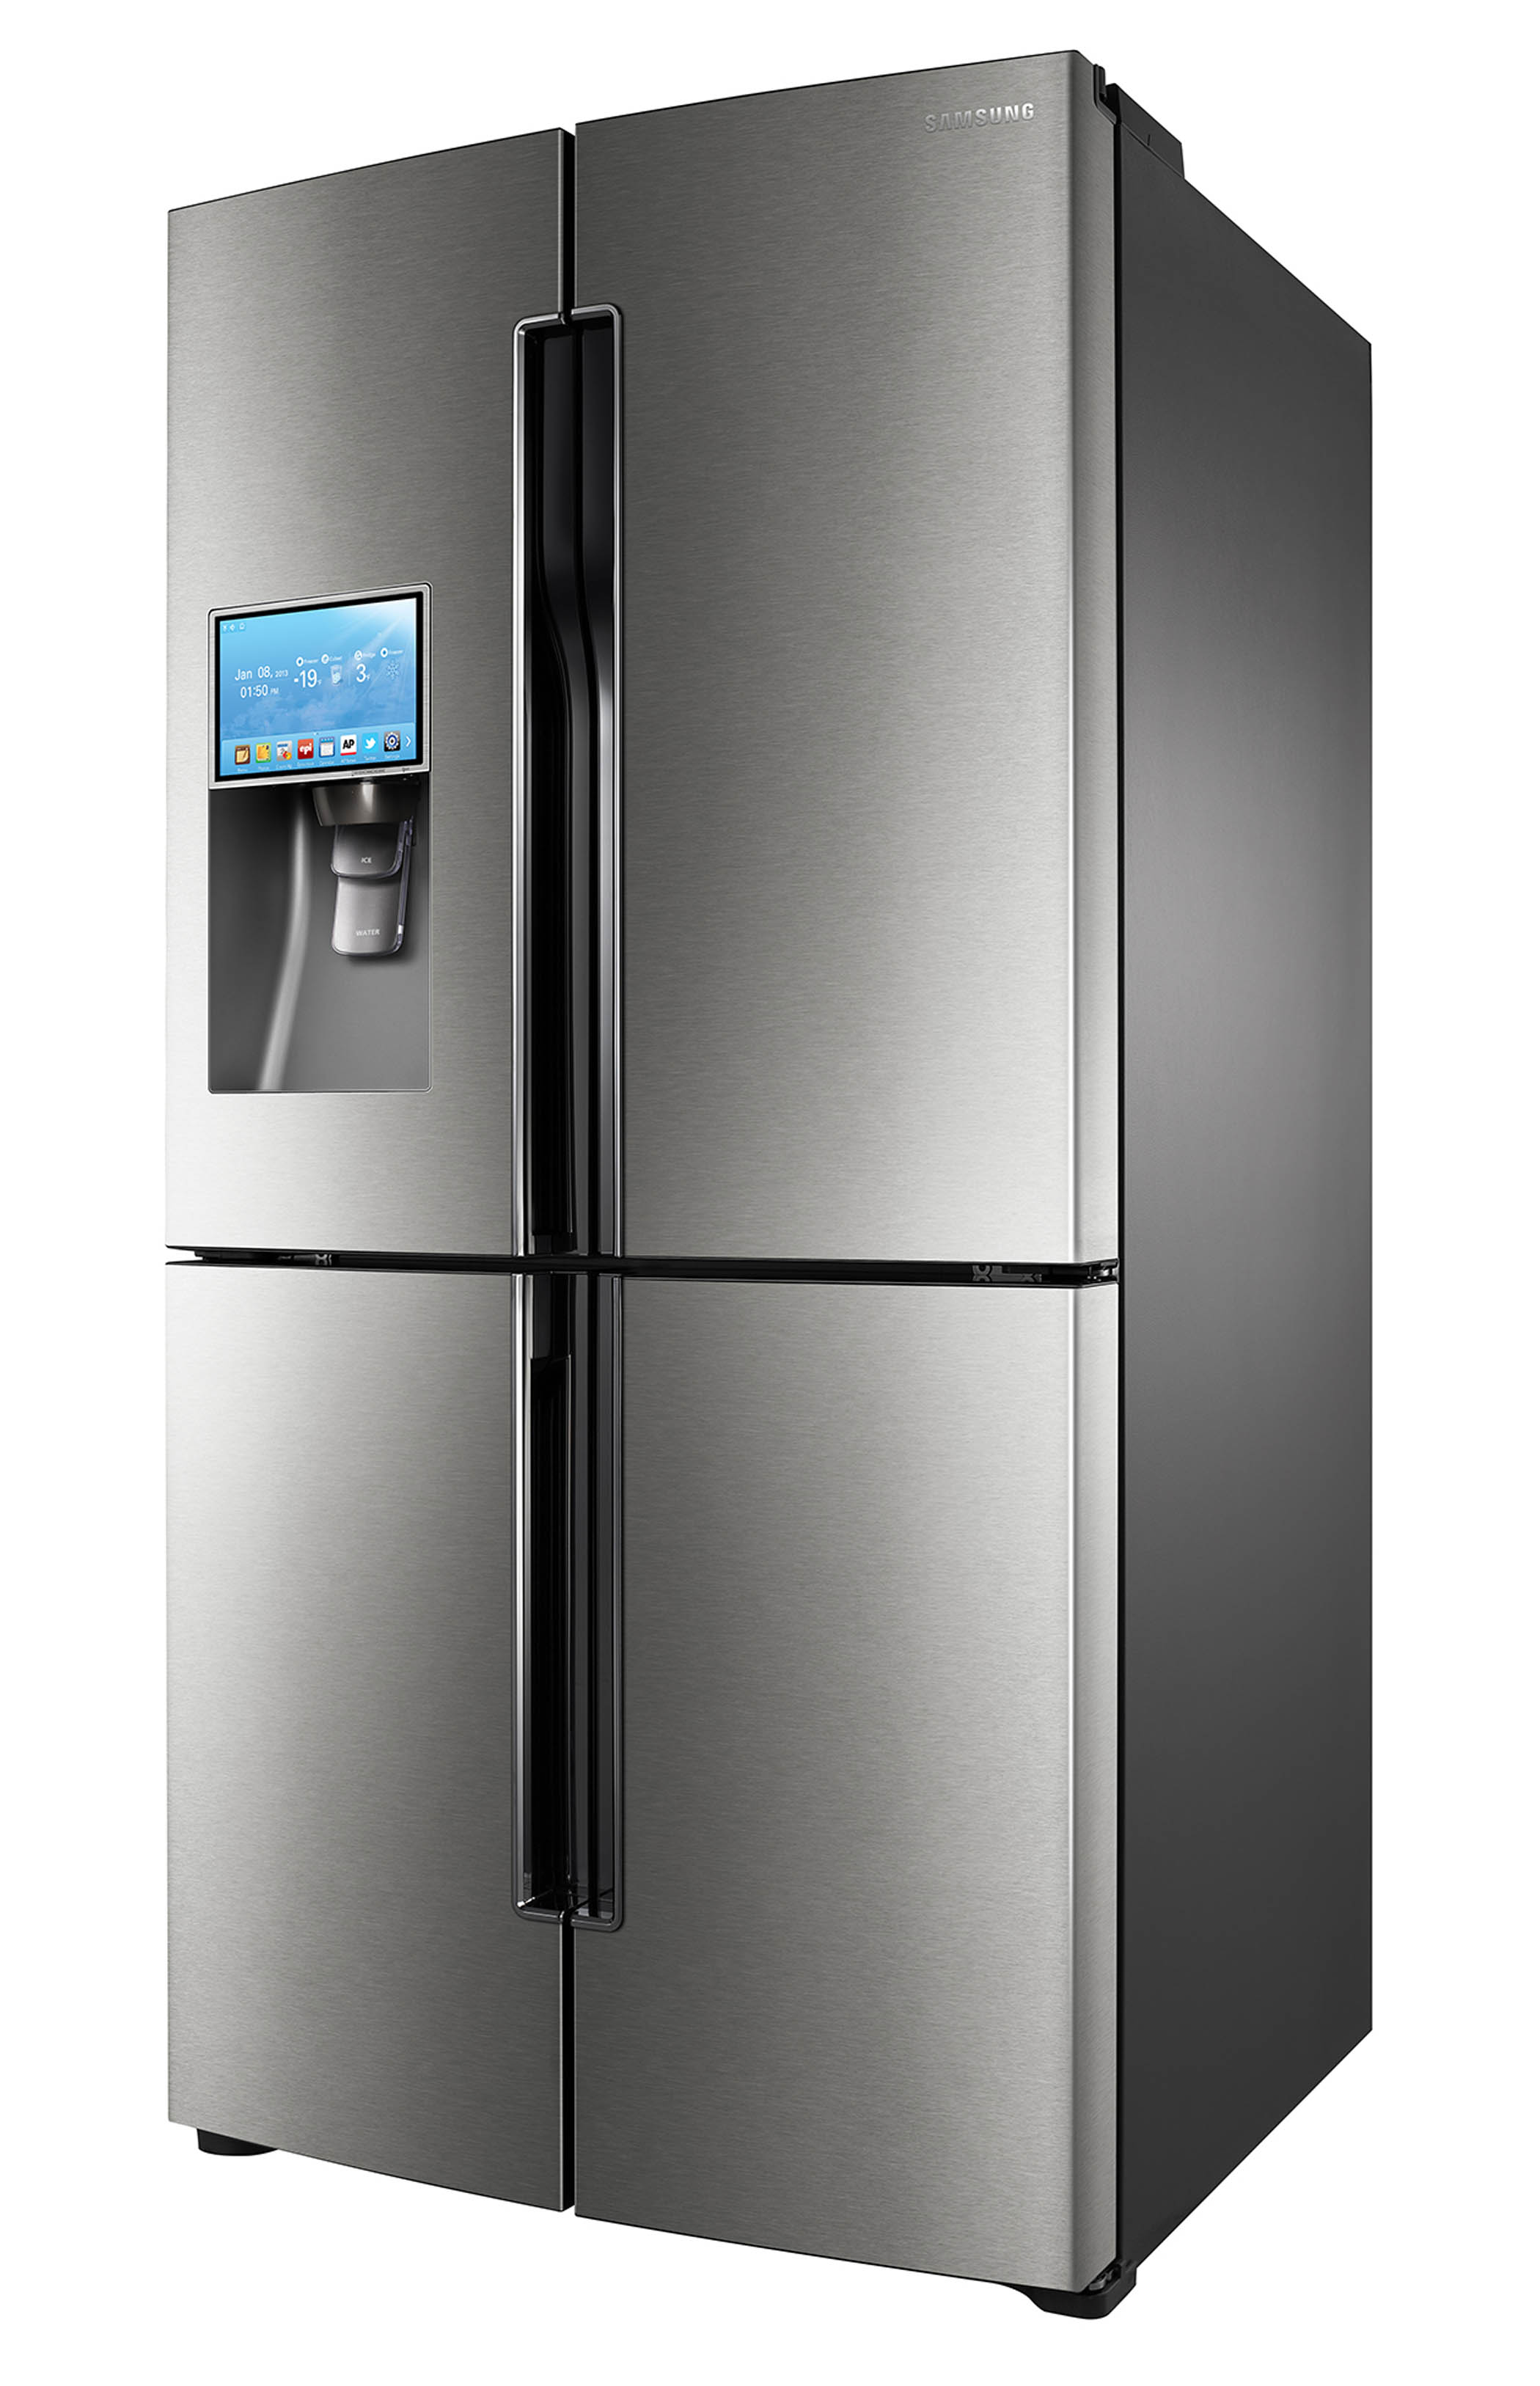 Belgi An Droid Samsung Frigo Intelligent T9000